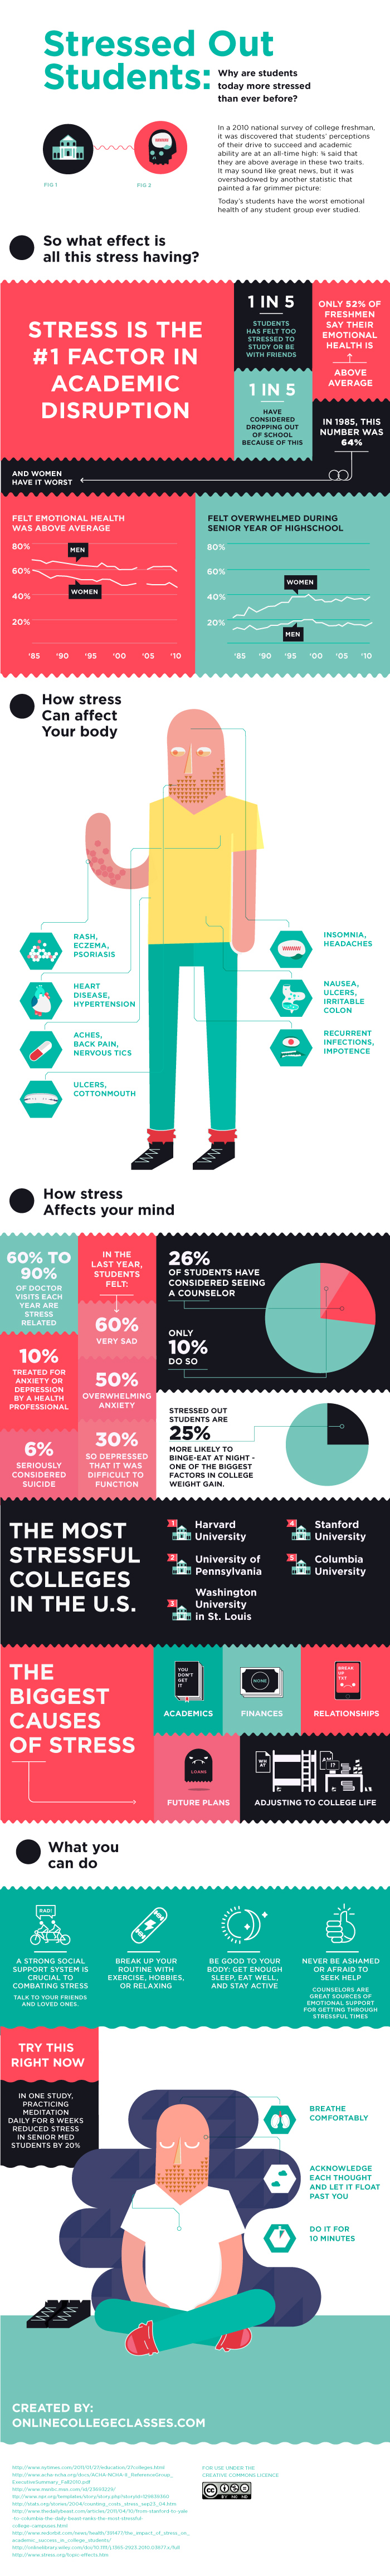 Survey Results: Are College Students Stressed Out